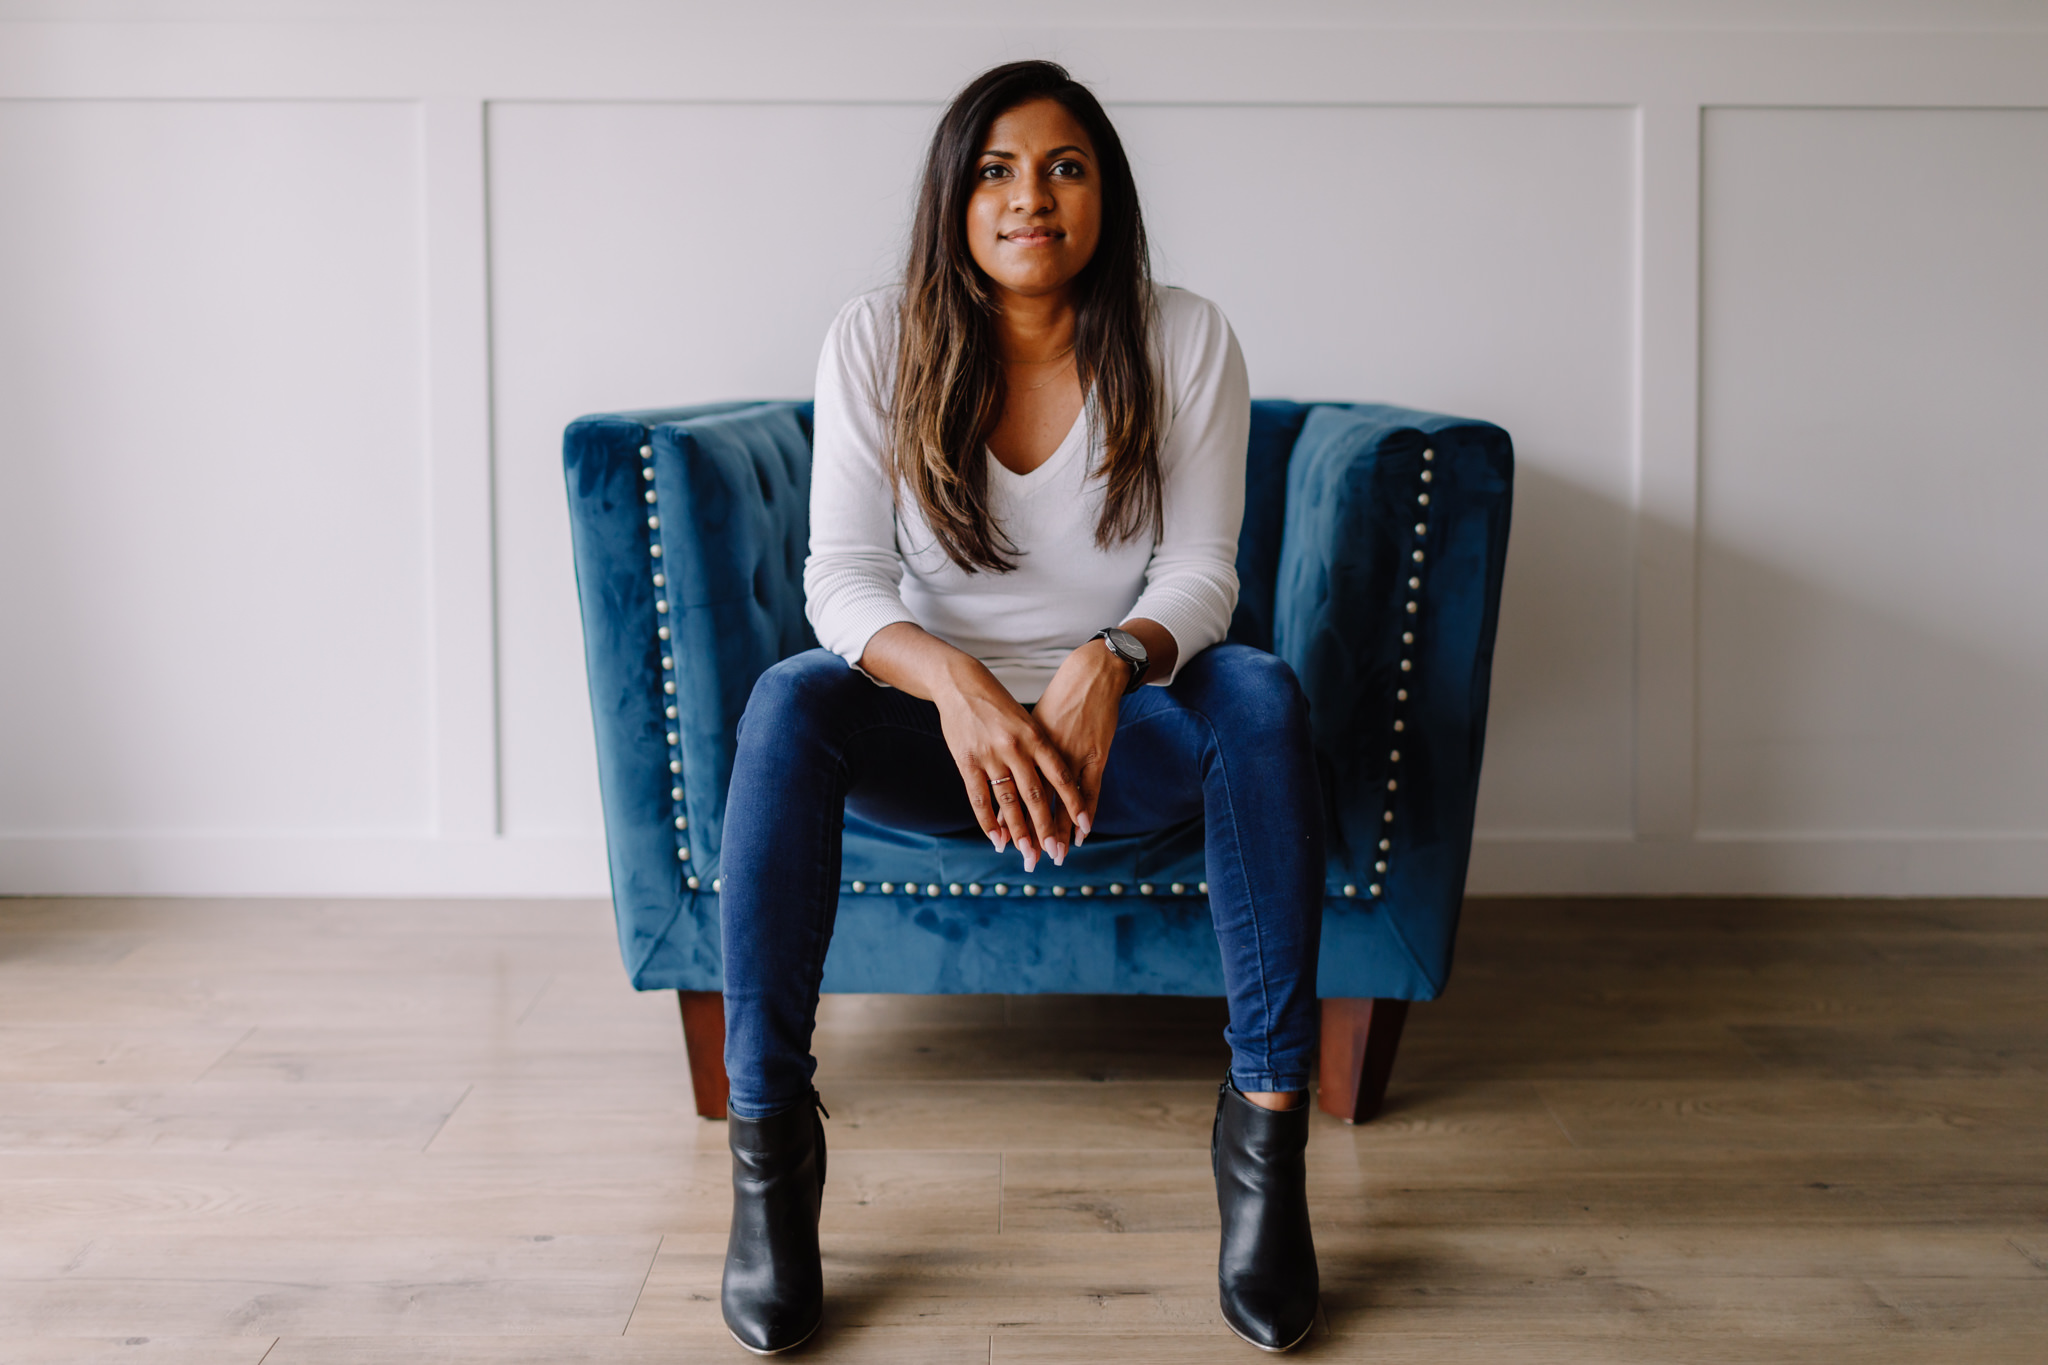 Woman sits on blue chair and looks into camera